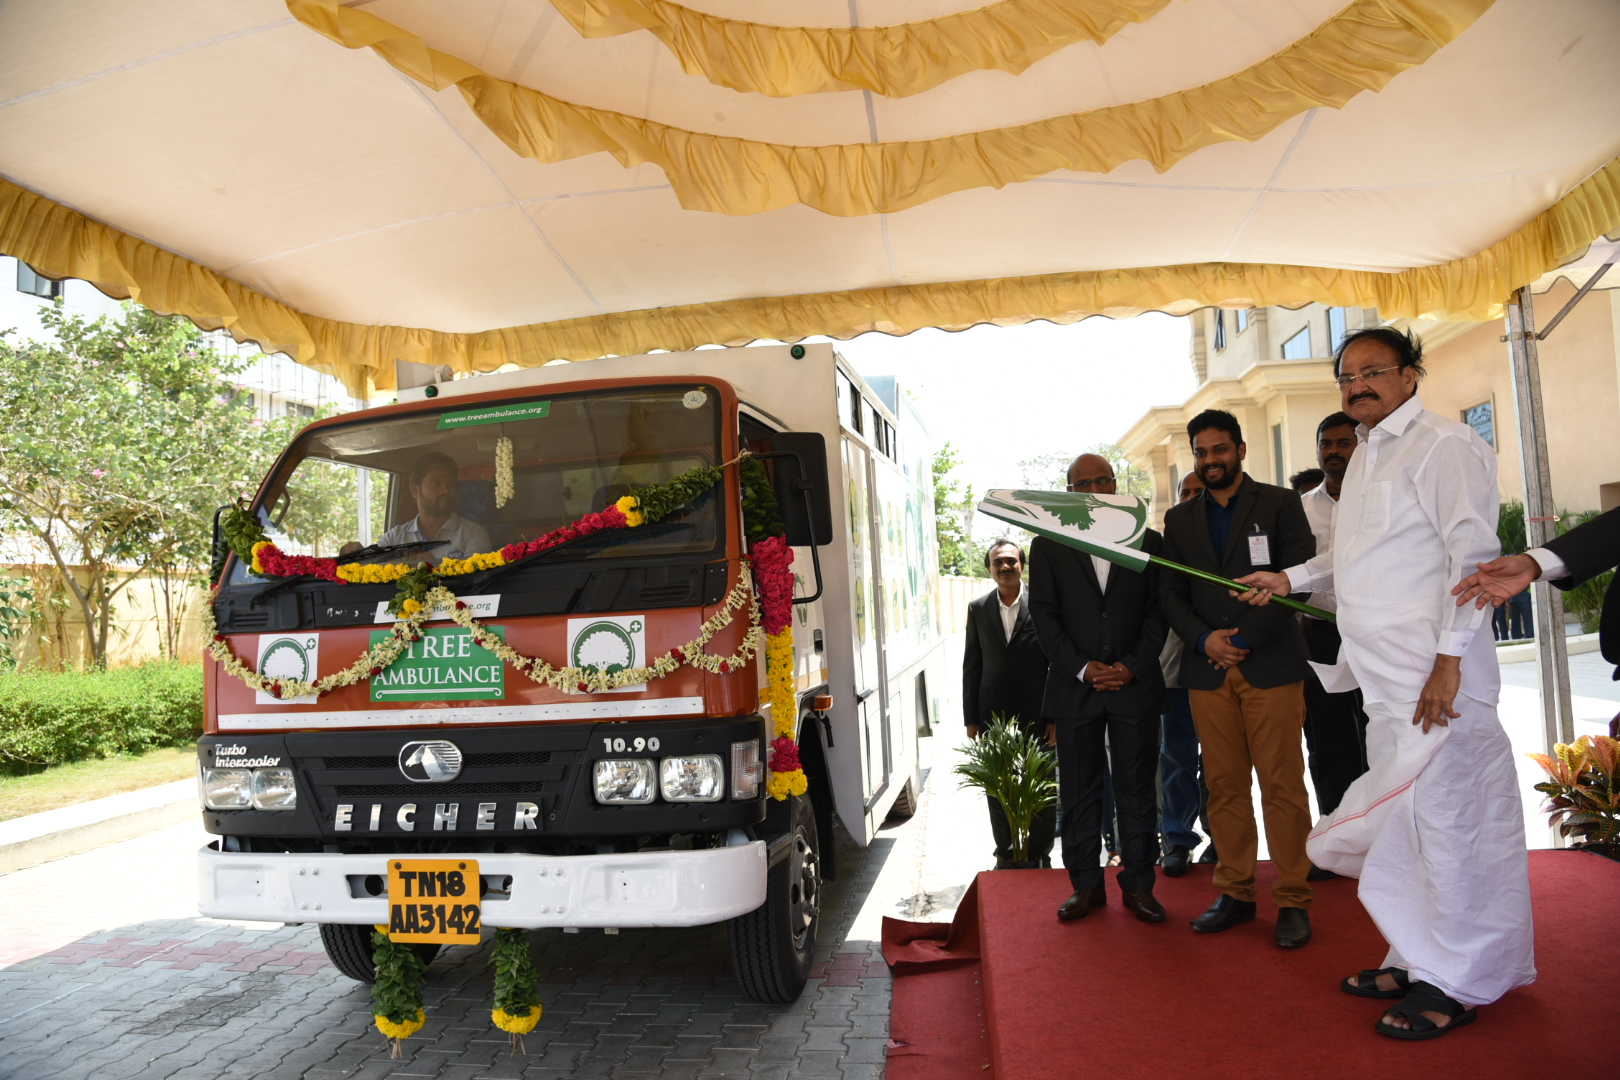 The Vice President, Shri M. Venkaiah Naidu flagging off the 'Tree Ambulance', an initiative to protect trees, on the occasion of International Day for Biological Diversity 2019, in Chennai on May 22, 2019.